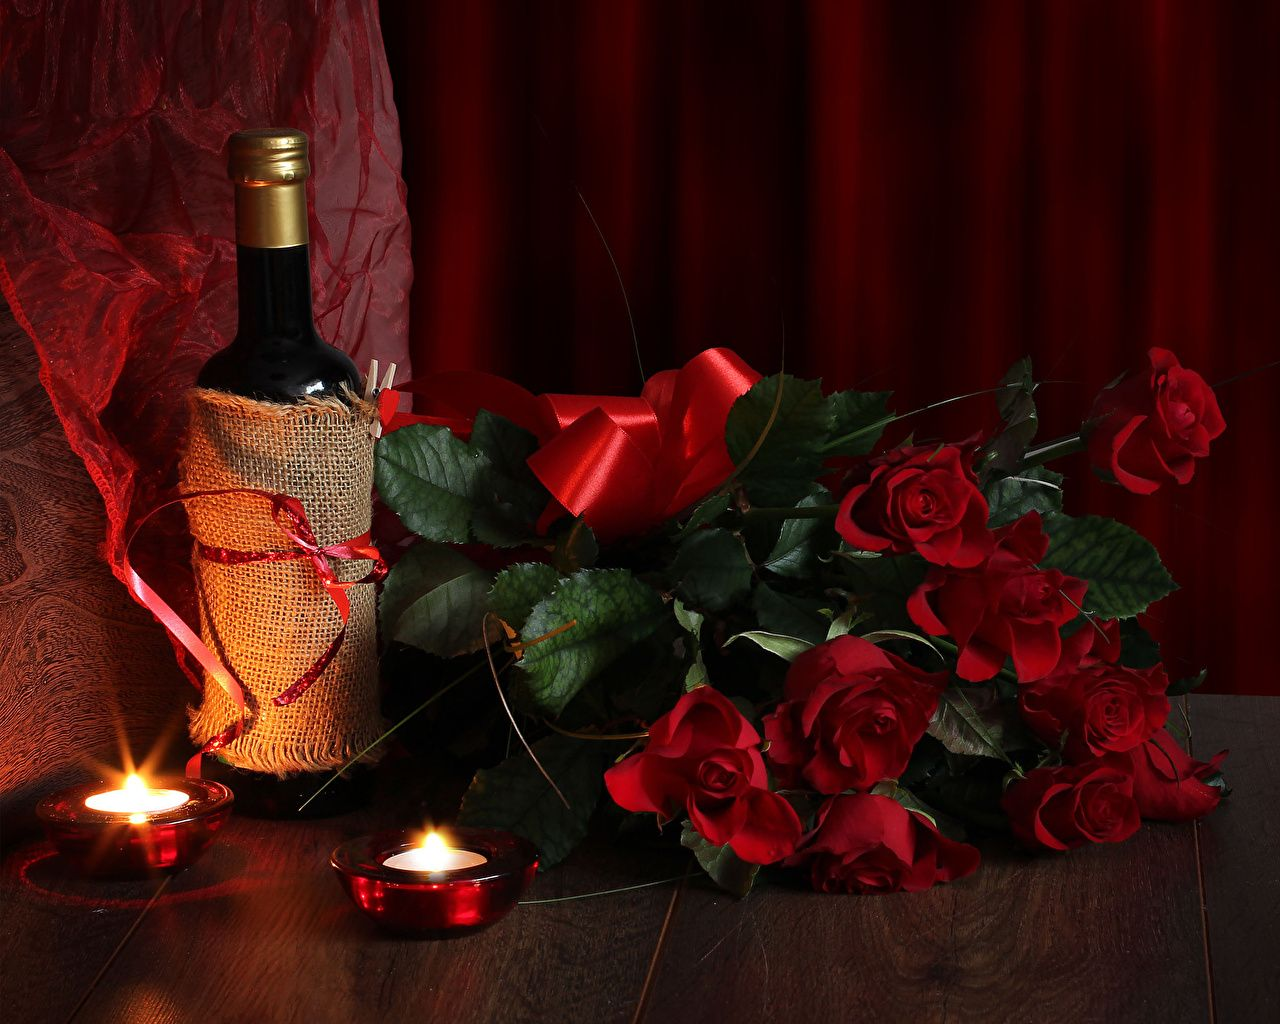 Wallpapers International Women S Day Bouquets Red Wine Roses Flowers Bottle Candles Holidays March 8 In 2020 Wine Bottle Candles Romantic Wine Red Wine